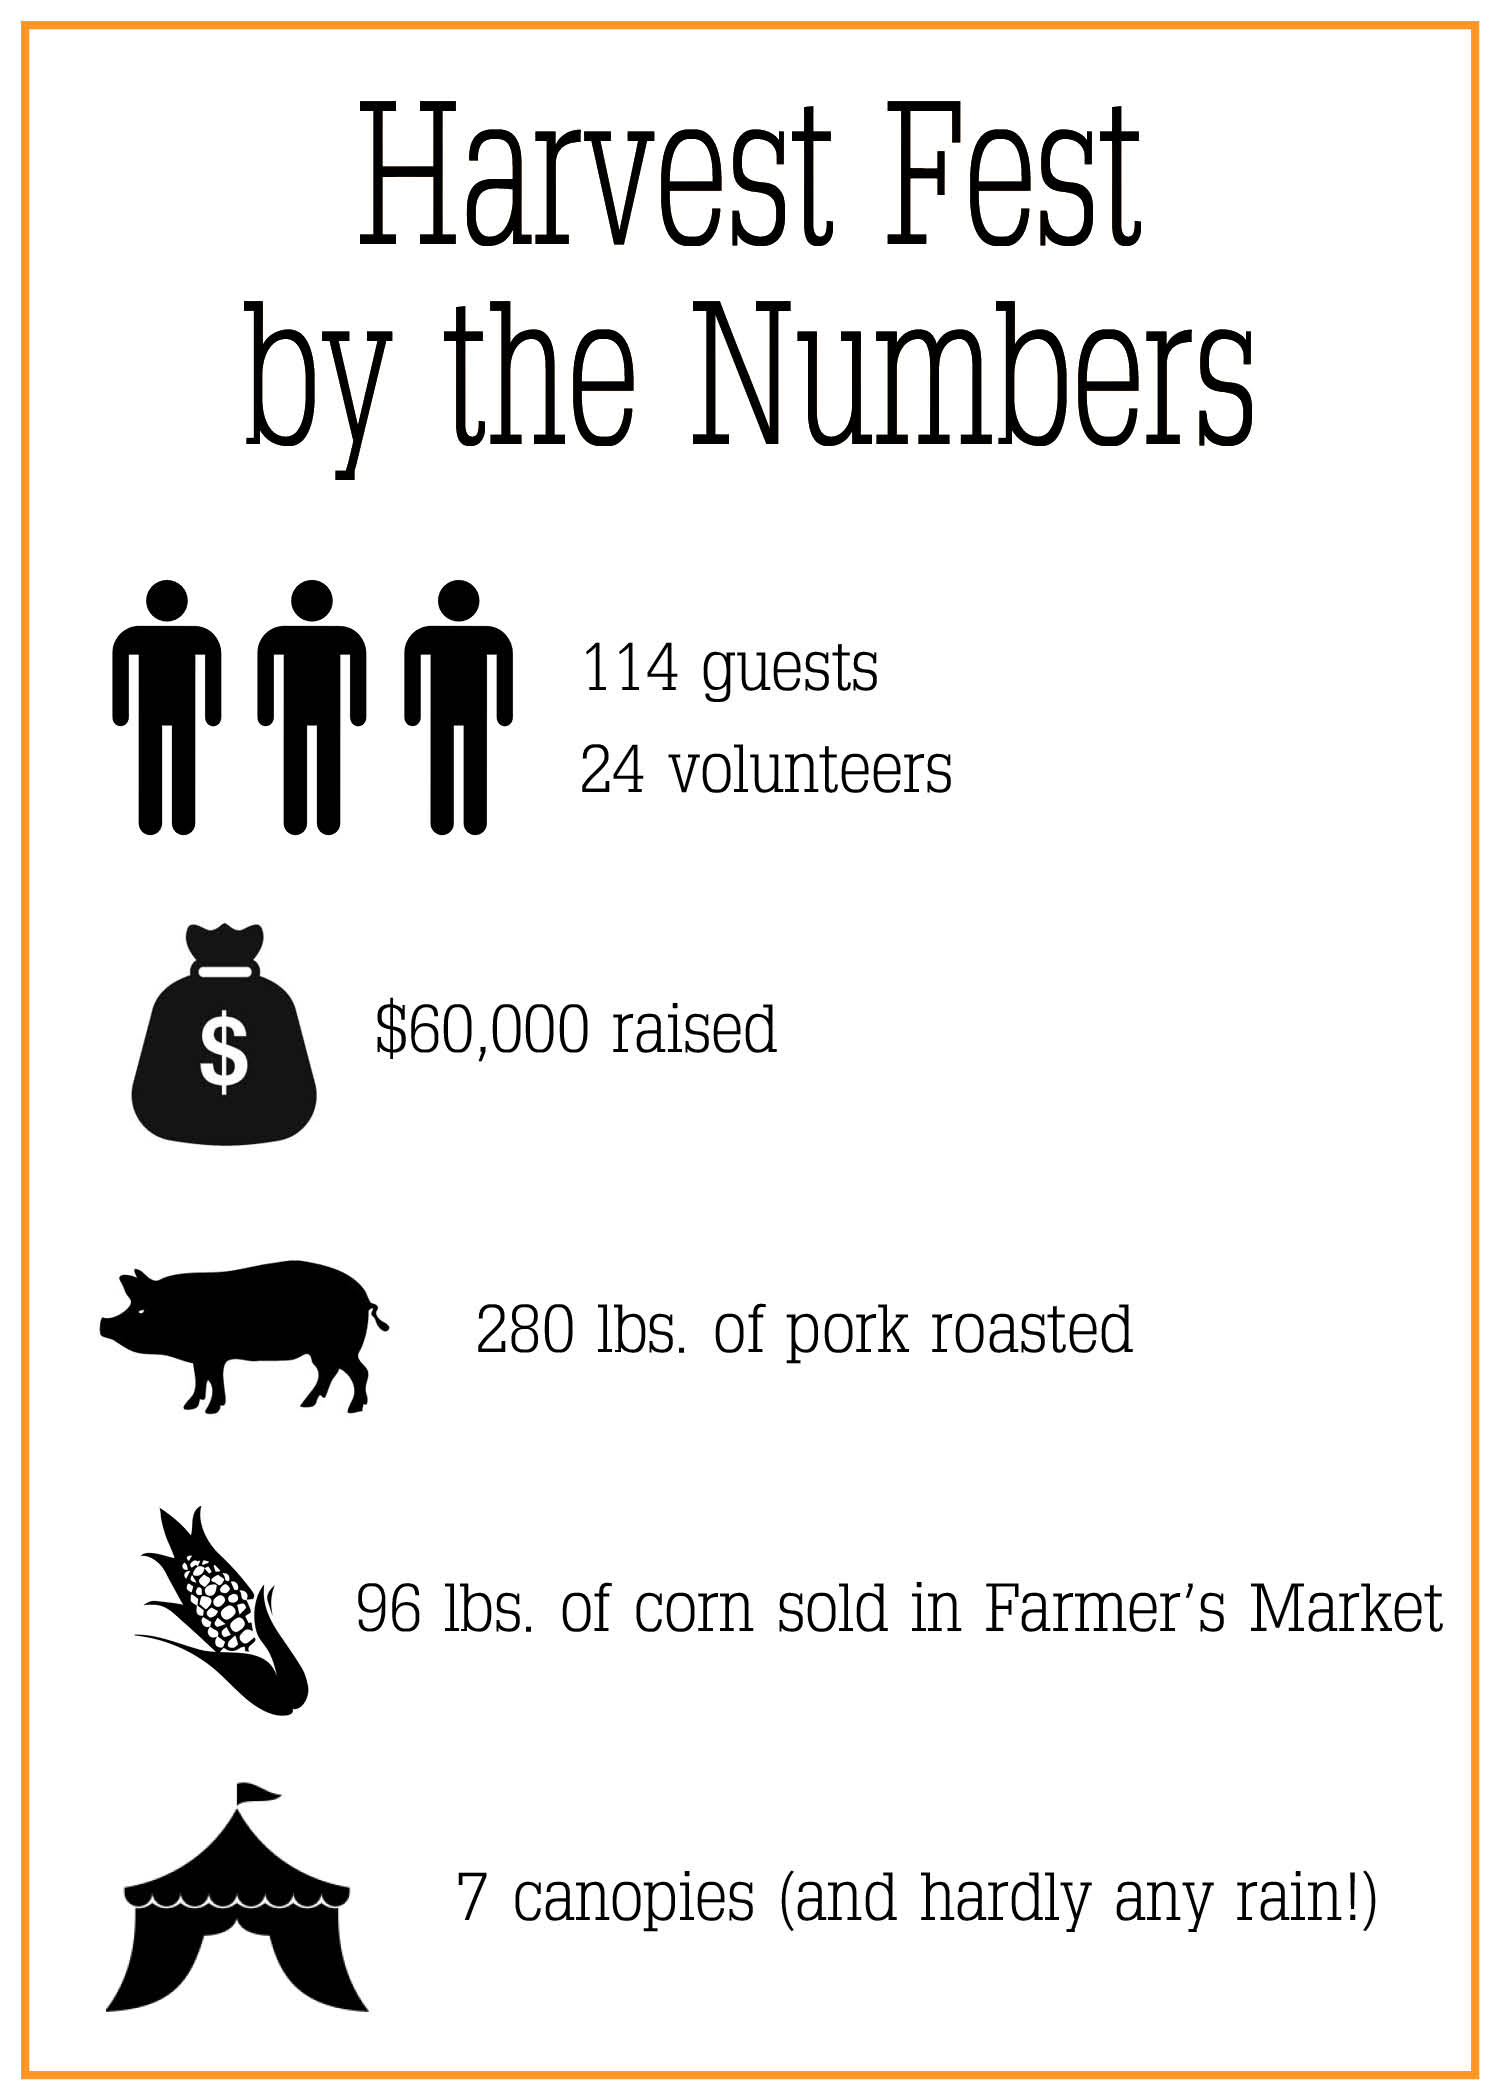 harvest-fest-by-the-numbers